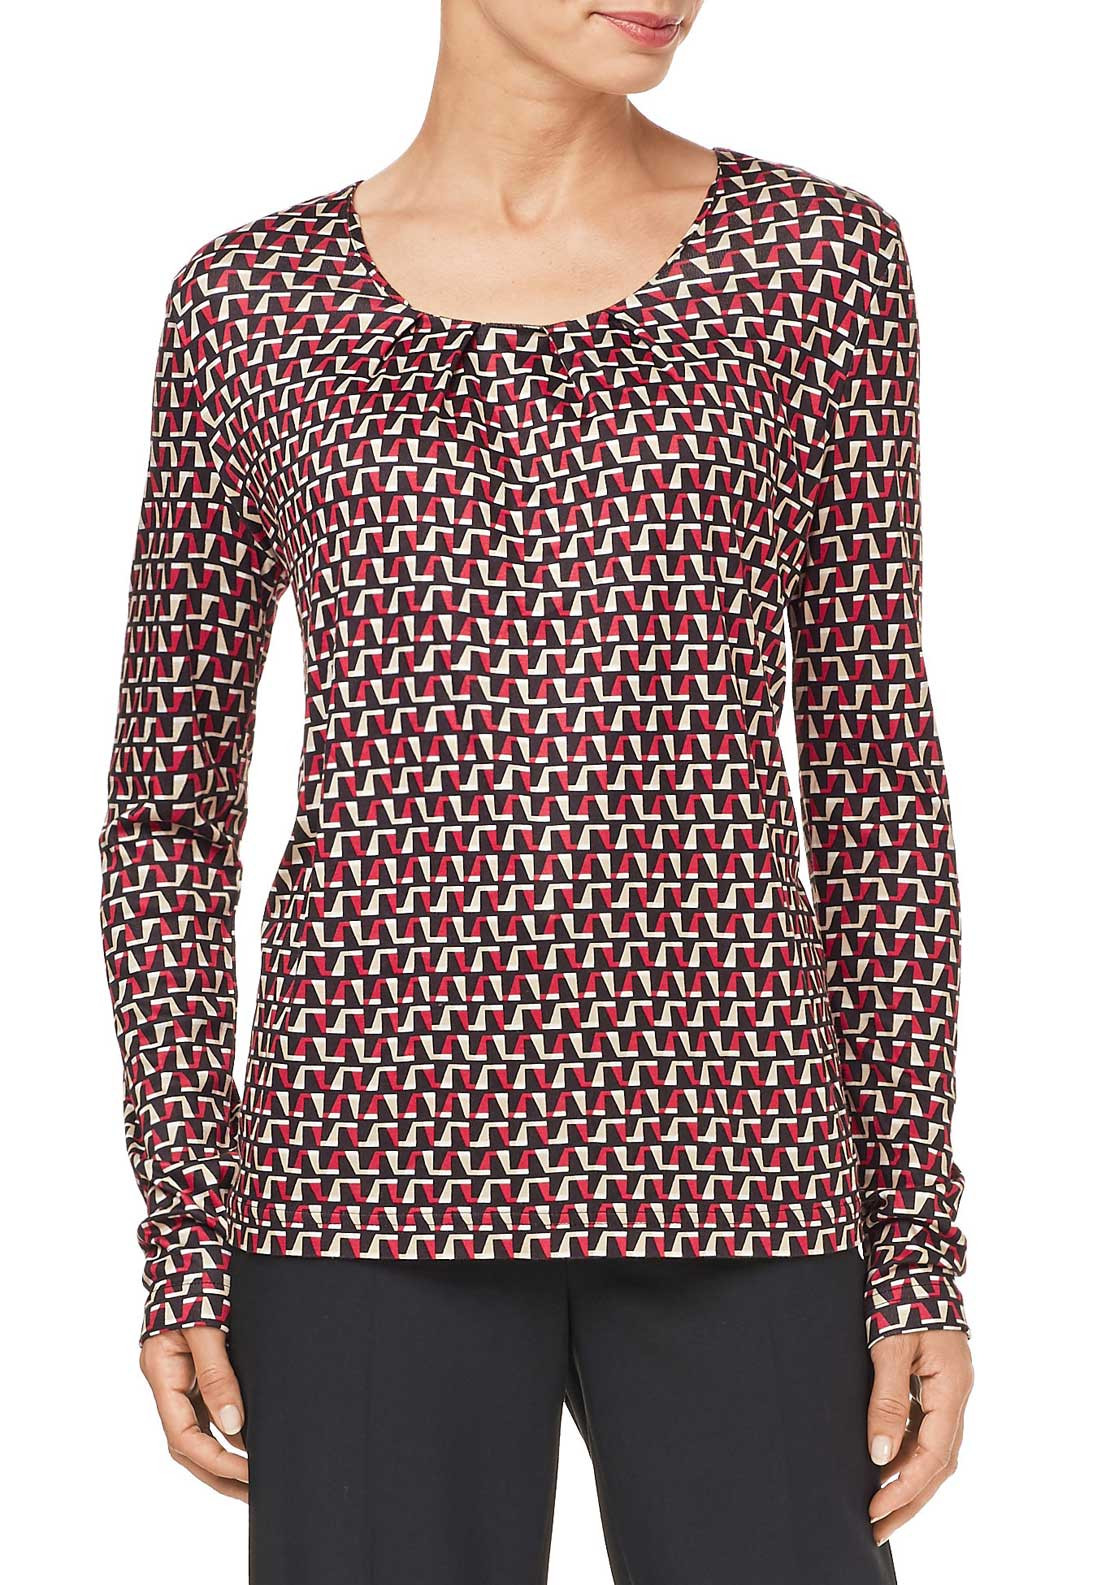 Gerry Weber Geometric Print Top, Red Multi